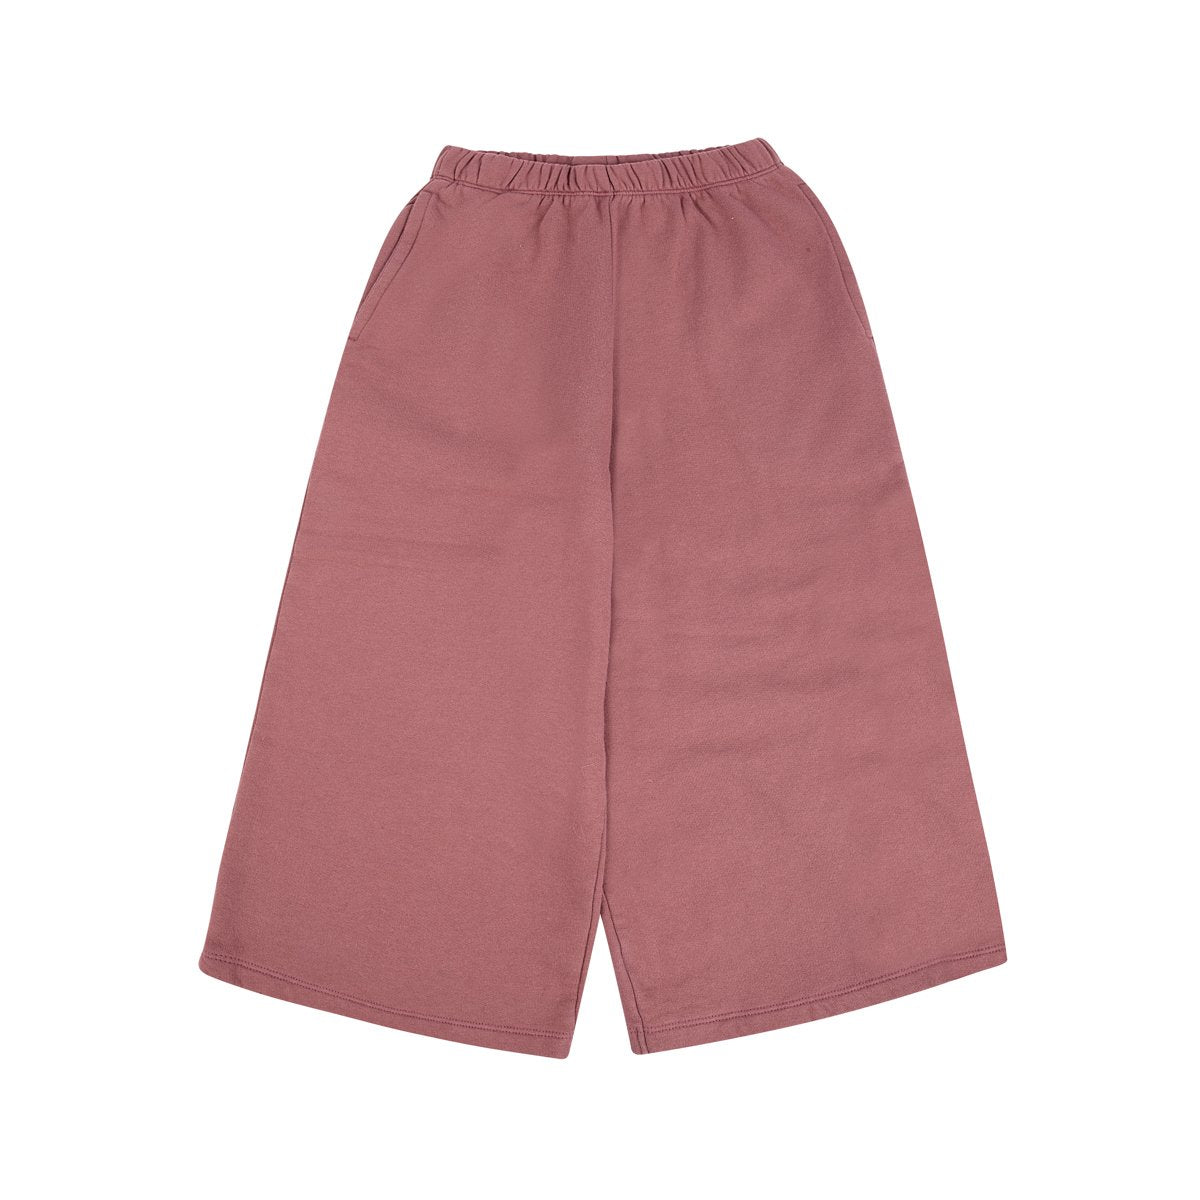 The New Society Hugo Culotte